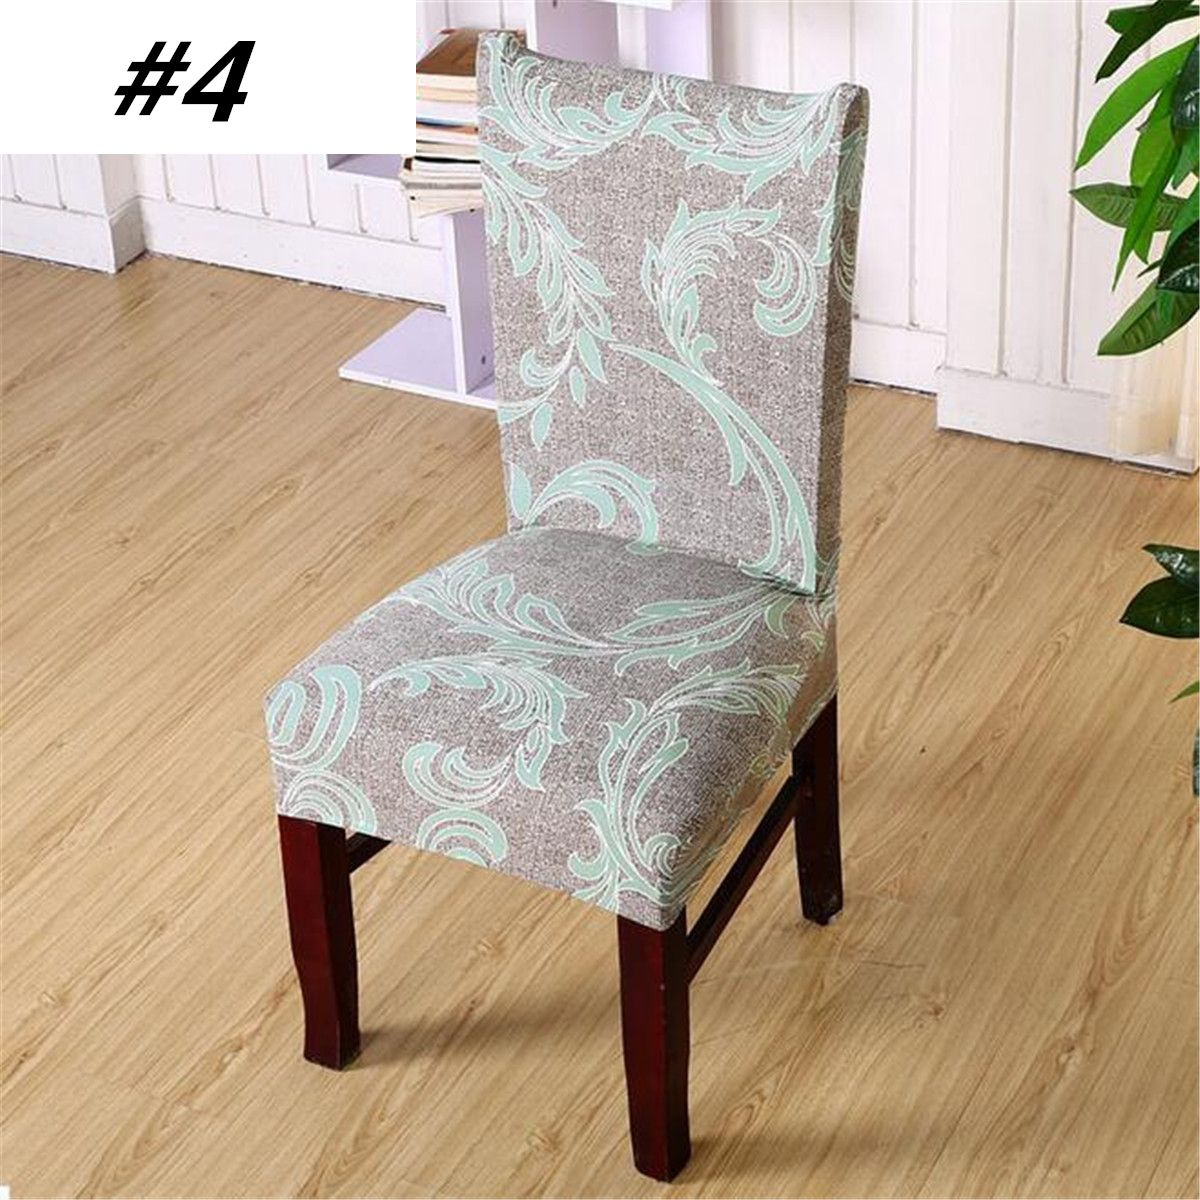 Set Of 4 Dining Chair Cover Protector Slipcover Spandex Stretch Short Dining Room Chair Covers Seat Protector With Printed Pattern For Dining Room Wedding Banqu Dining Room Chair Covers Slipcovers For Chairs